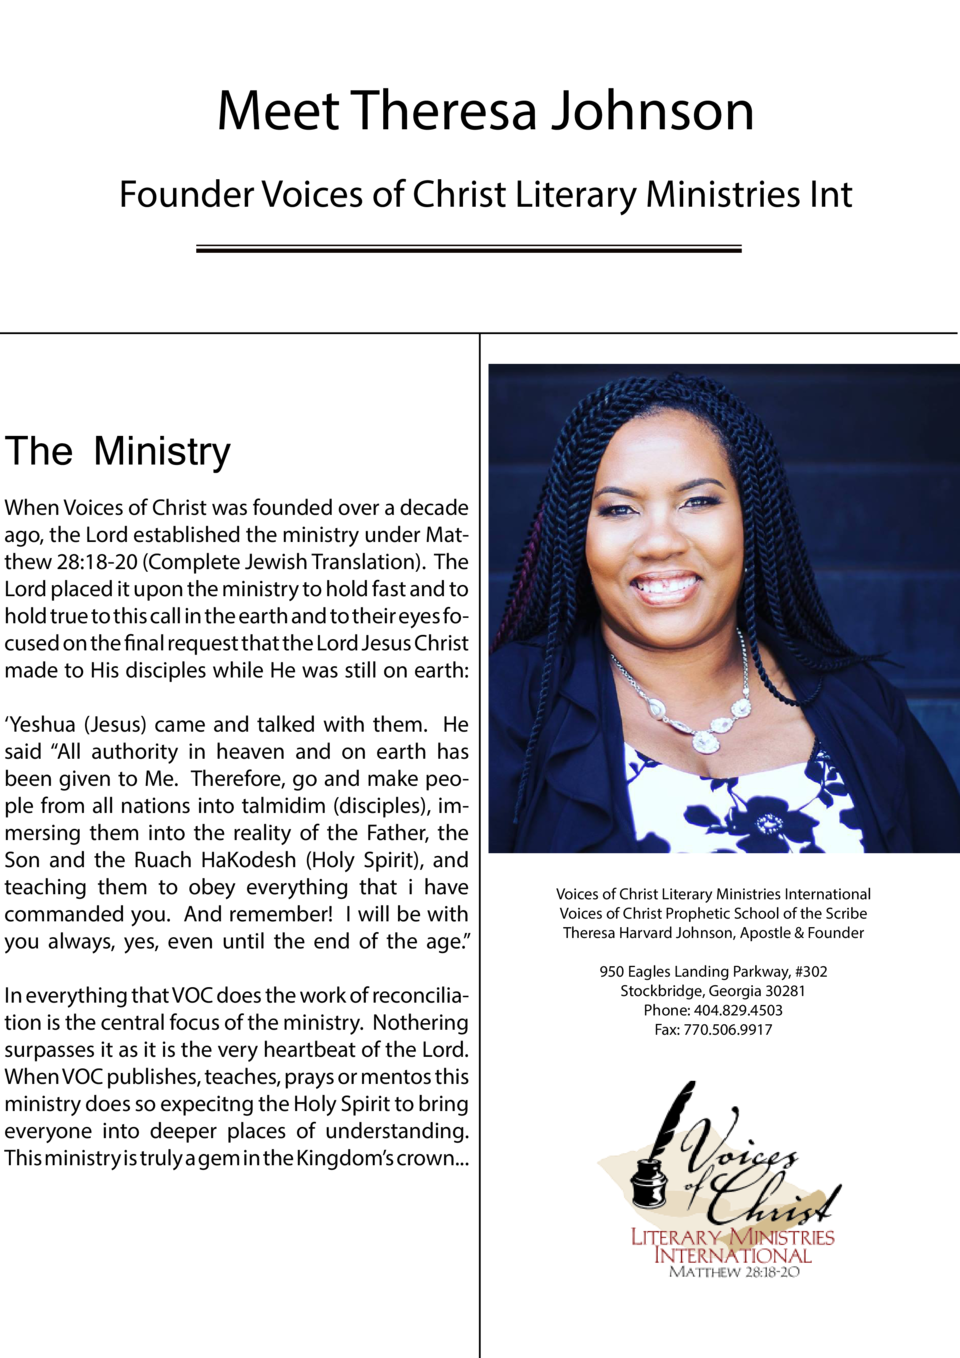 Meet Theresa Johnson Founder Voices of Christ Literary Ministries Int  The Ministry  Editor-in-Chief Karin McBride-Chenowe...